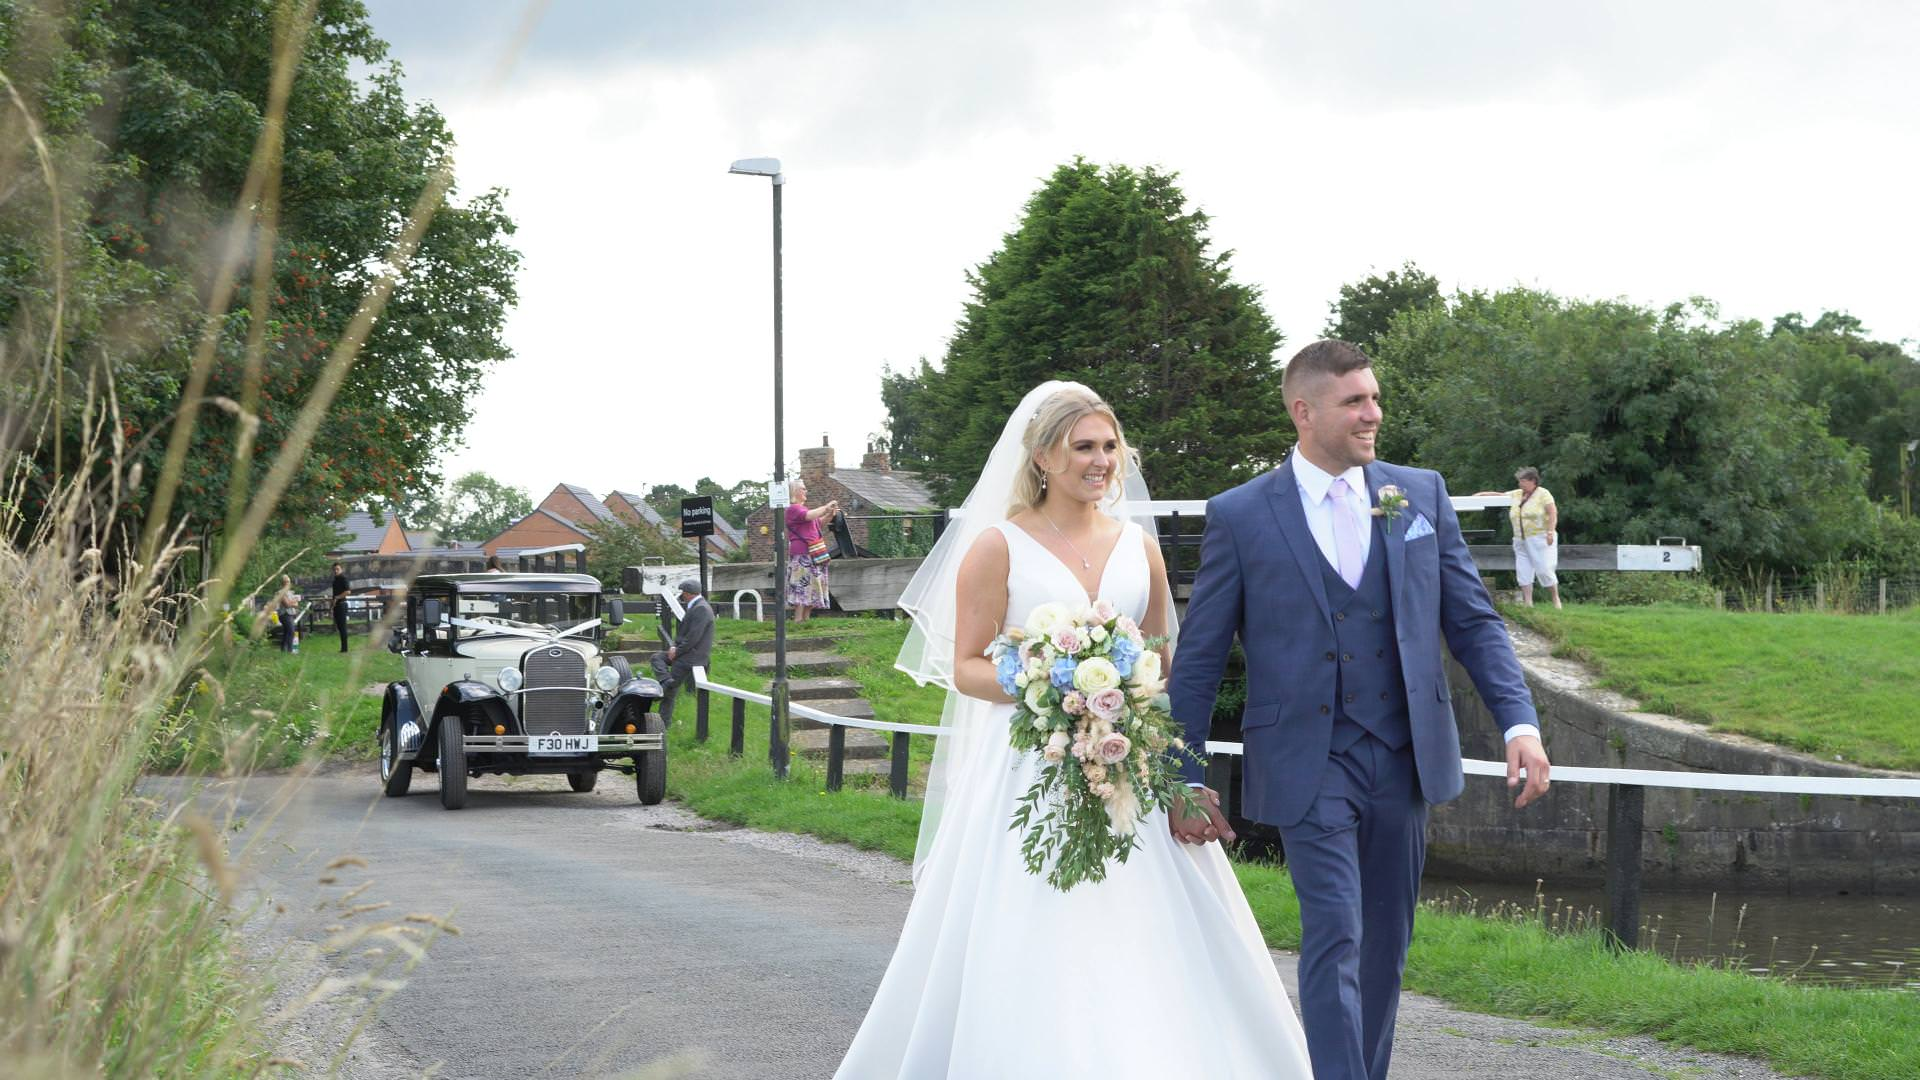 a bride and groom walk beside the leeds liverpool canal in Burscough during their wedding day